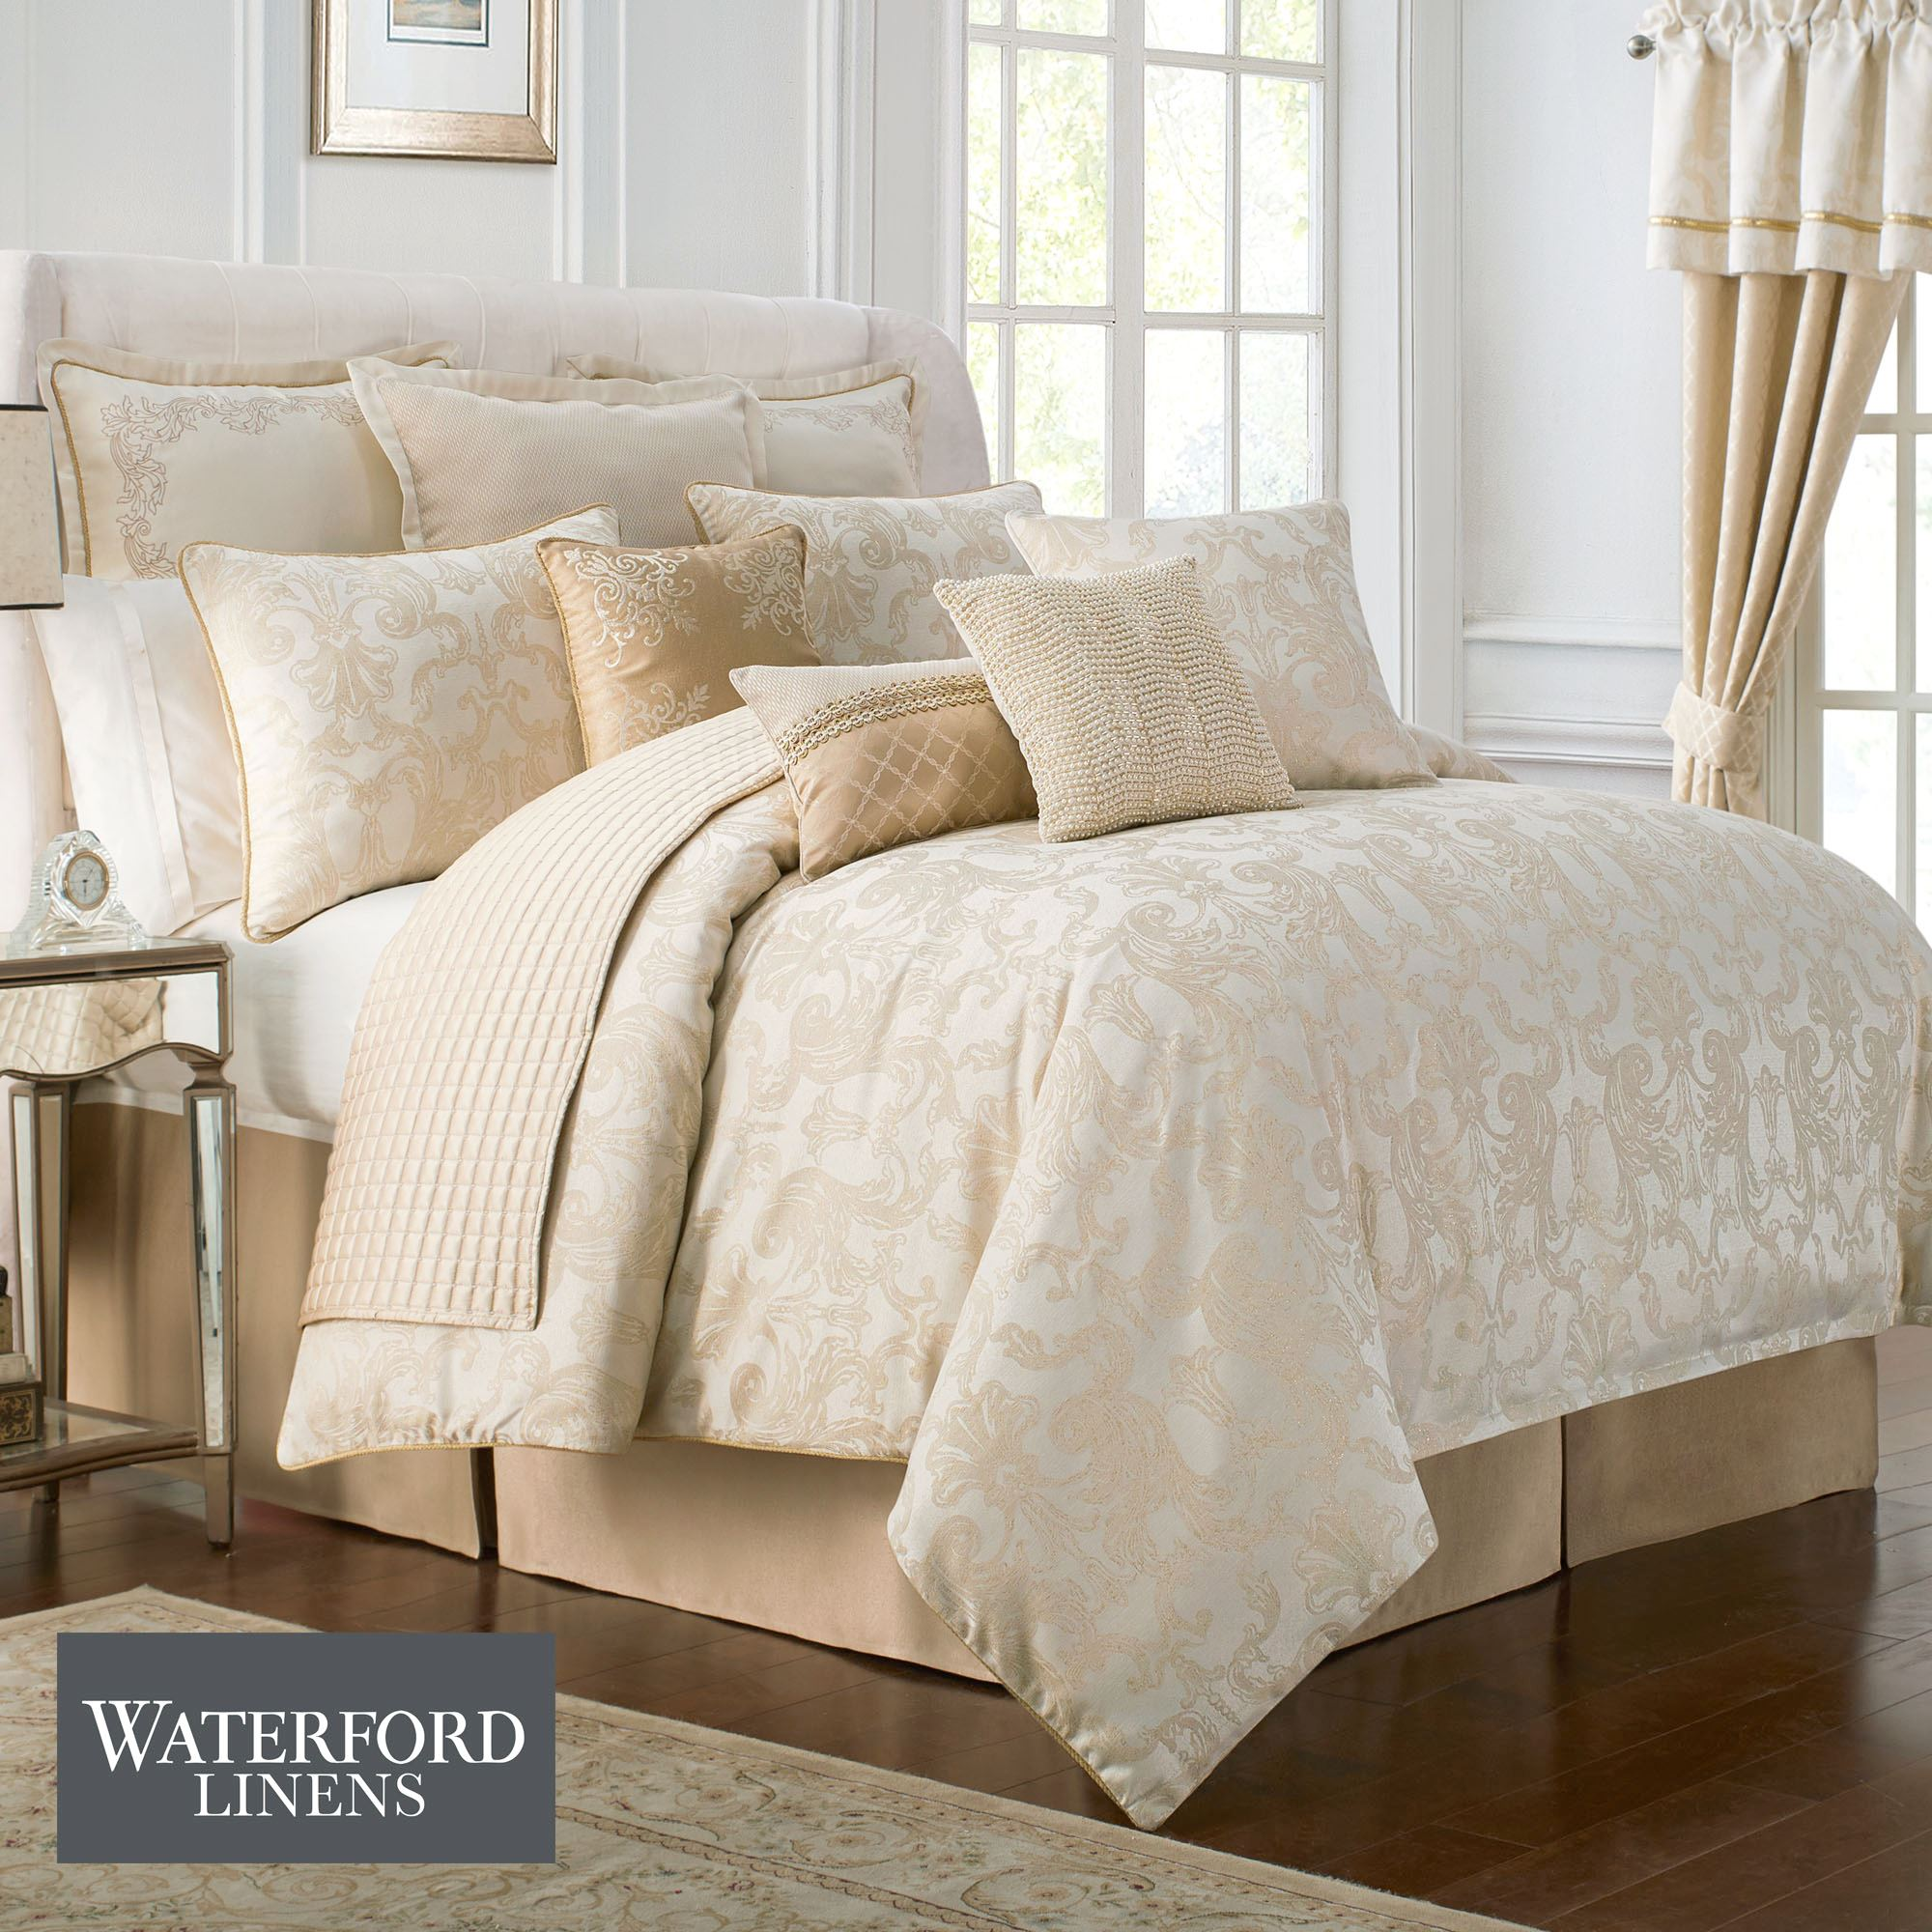 Britt Gold And Cream Comforter Bedding From Waterford Linens